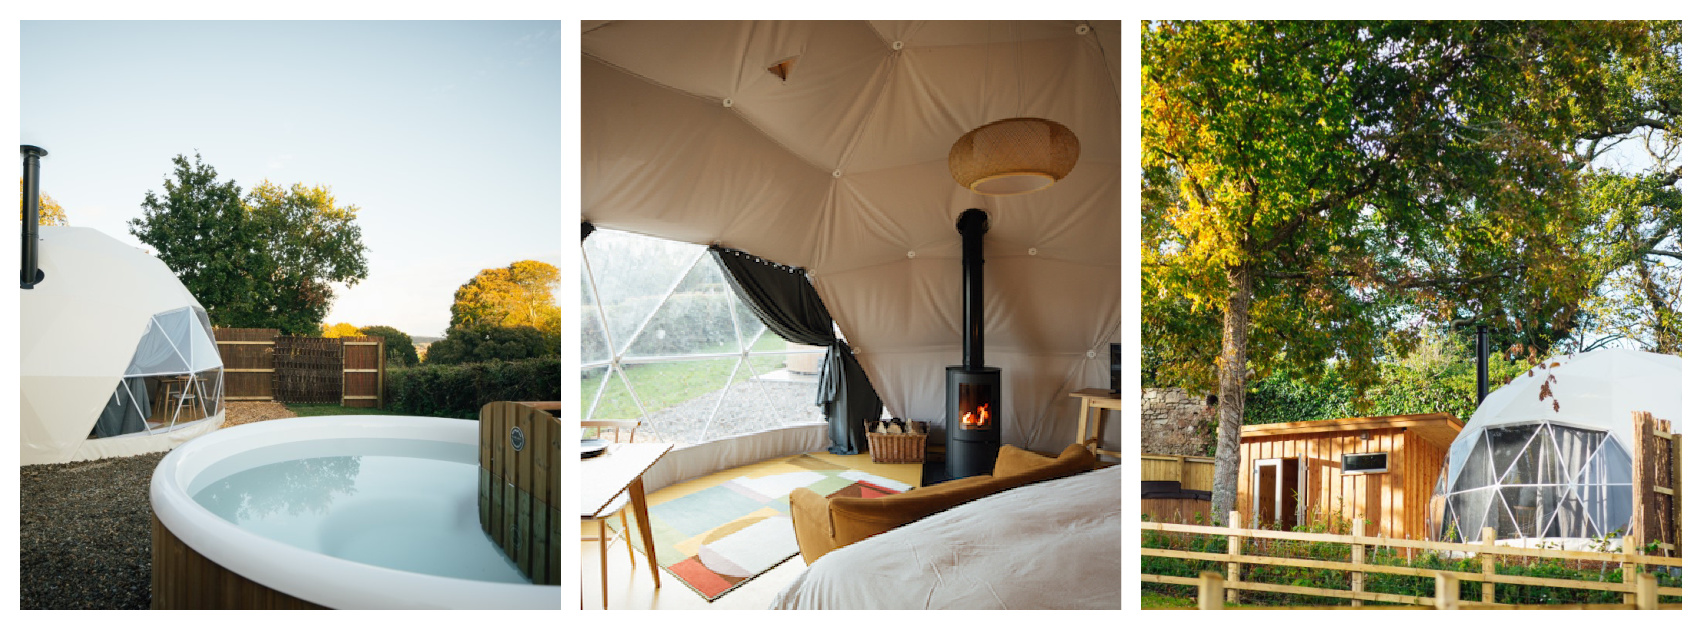 quirky glamping, dog friendly, hot tub